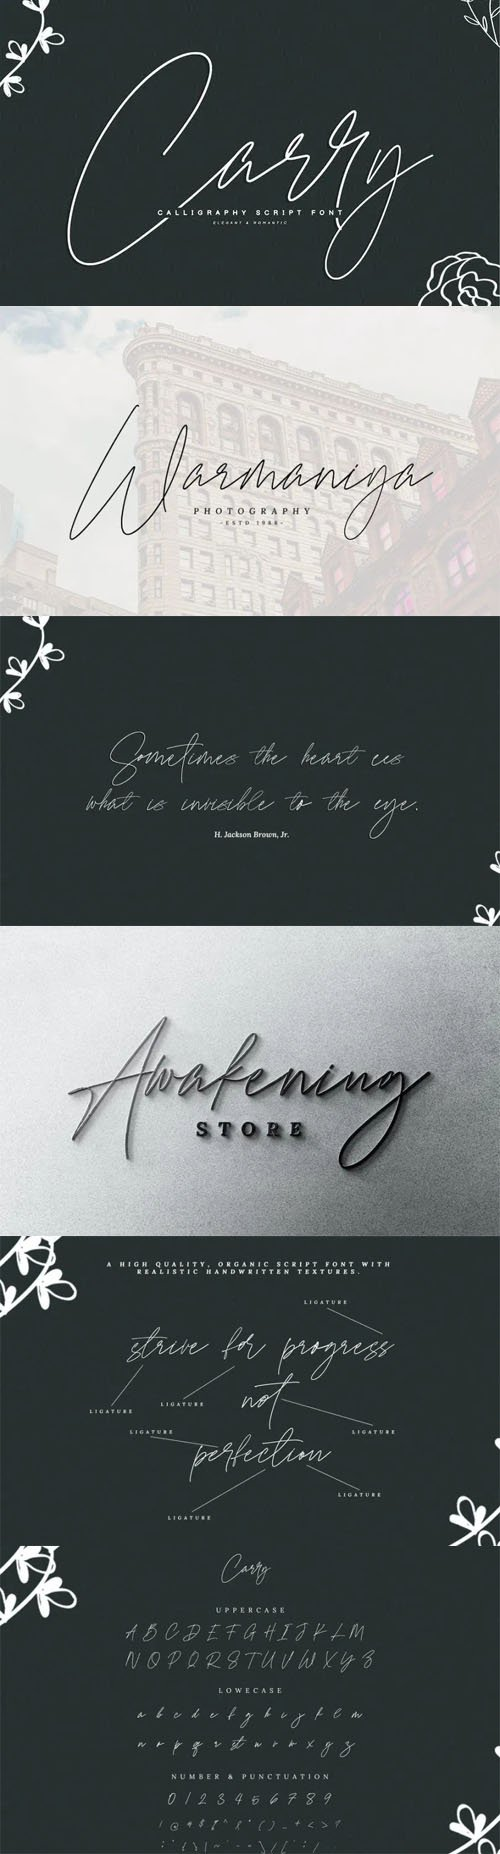 Carry - Calligraphy Script Font